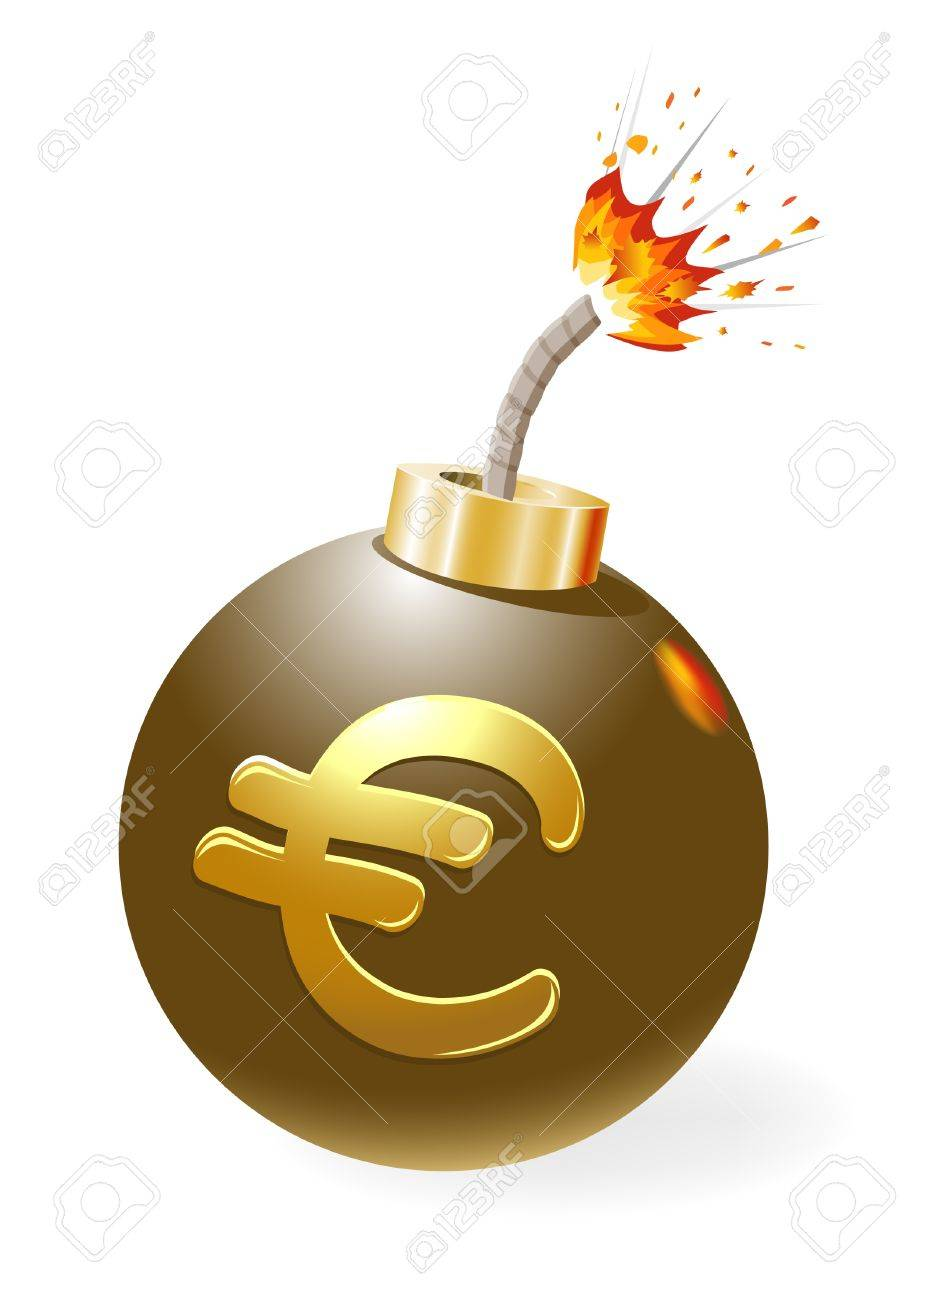 Ignited bomb, euro in the stage of crisis. Stock Vector - 11994378